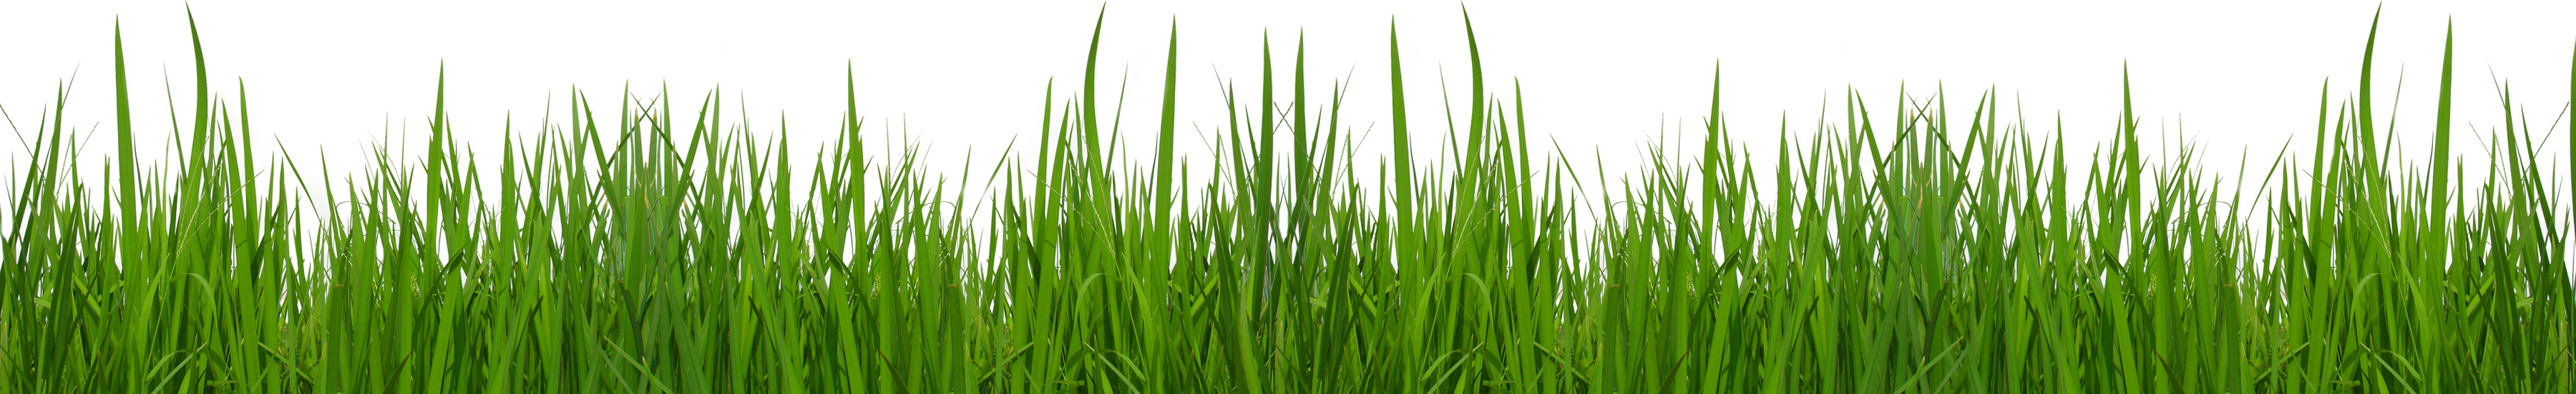 Grass clipart crop. Ground with flowers picture